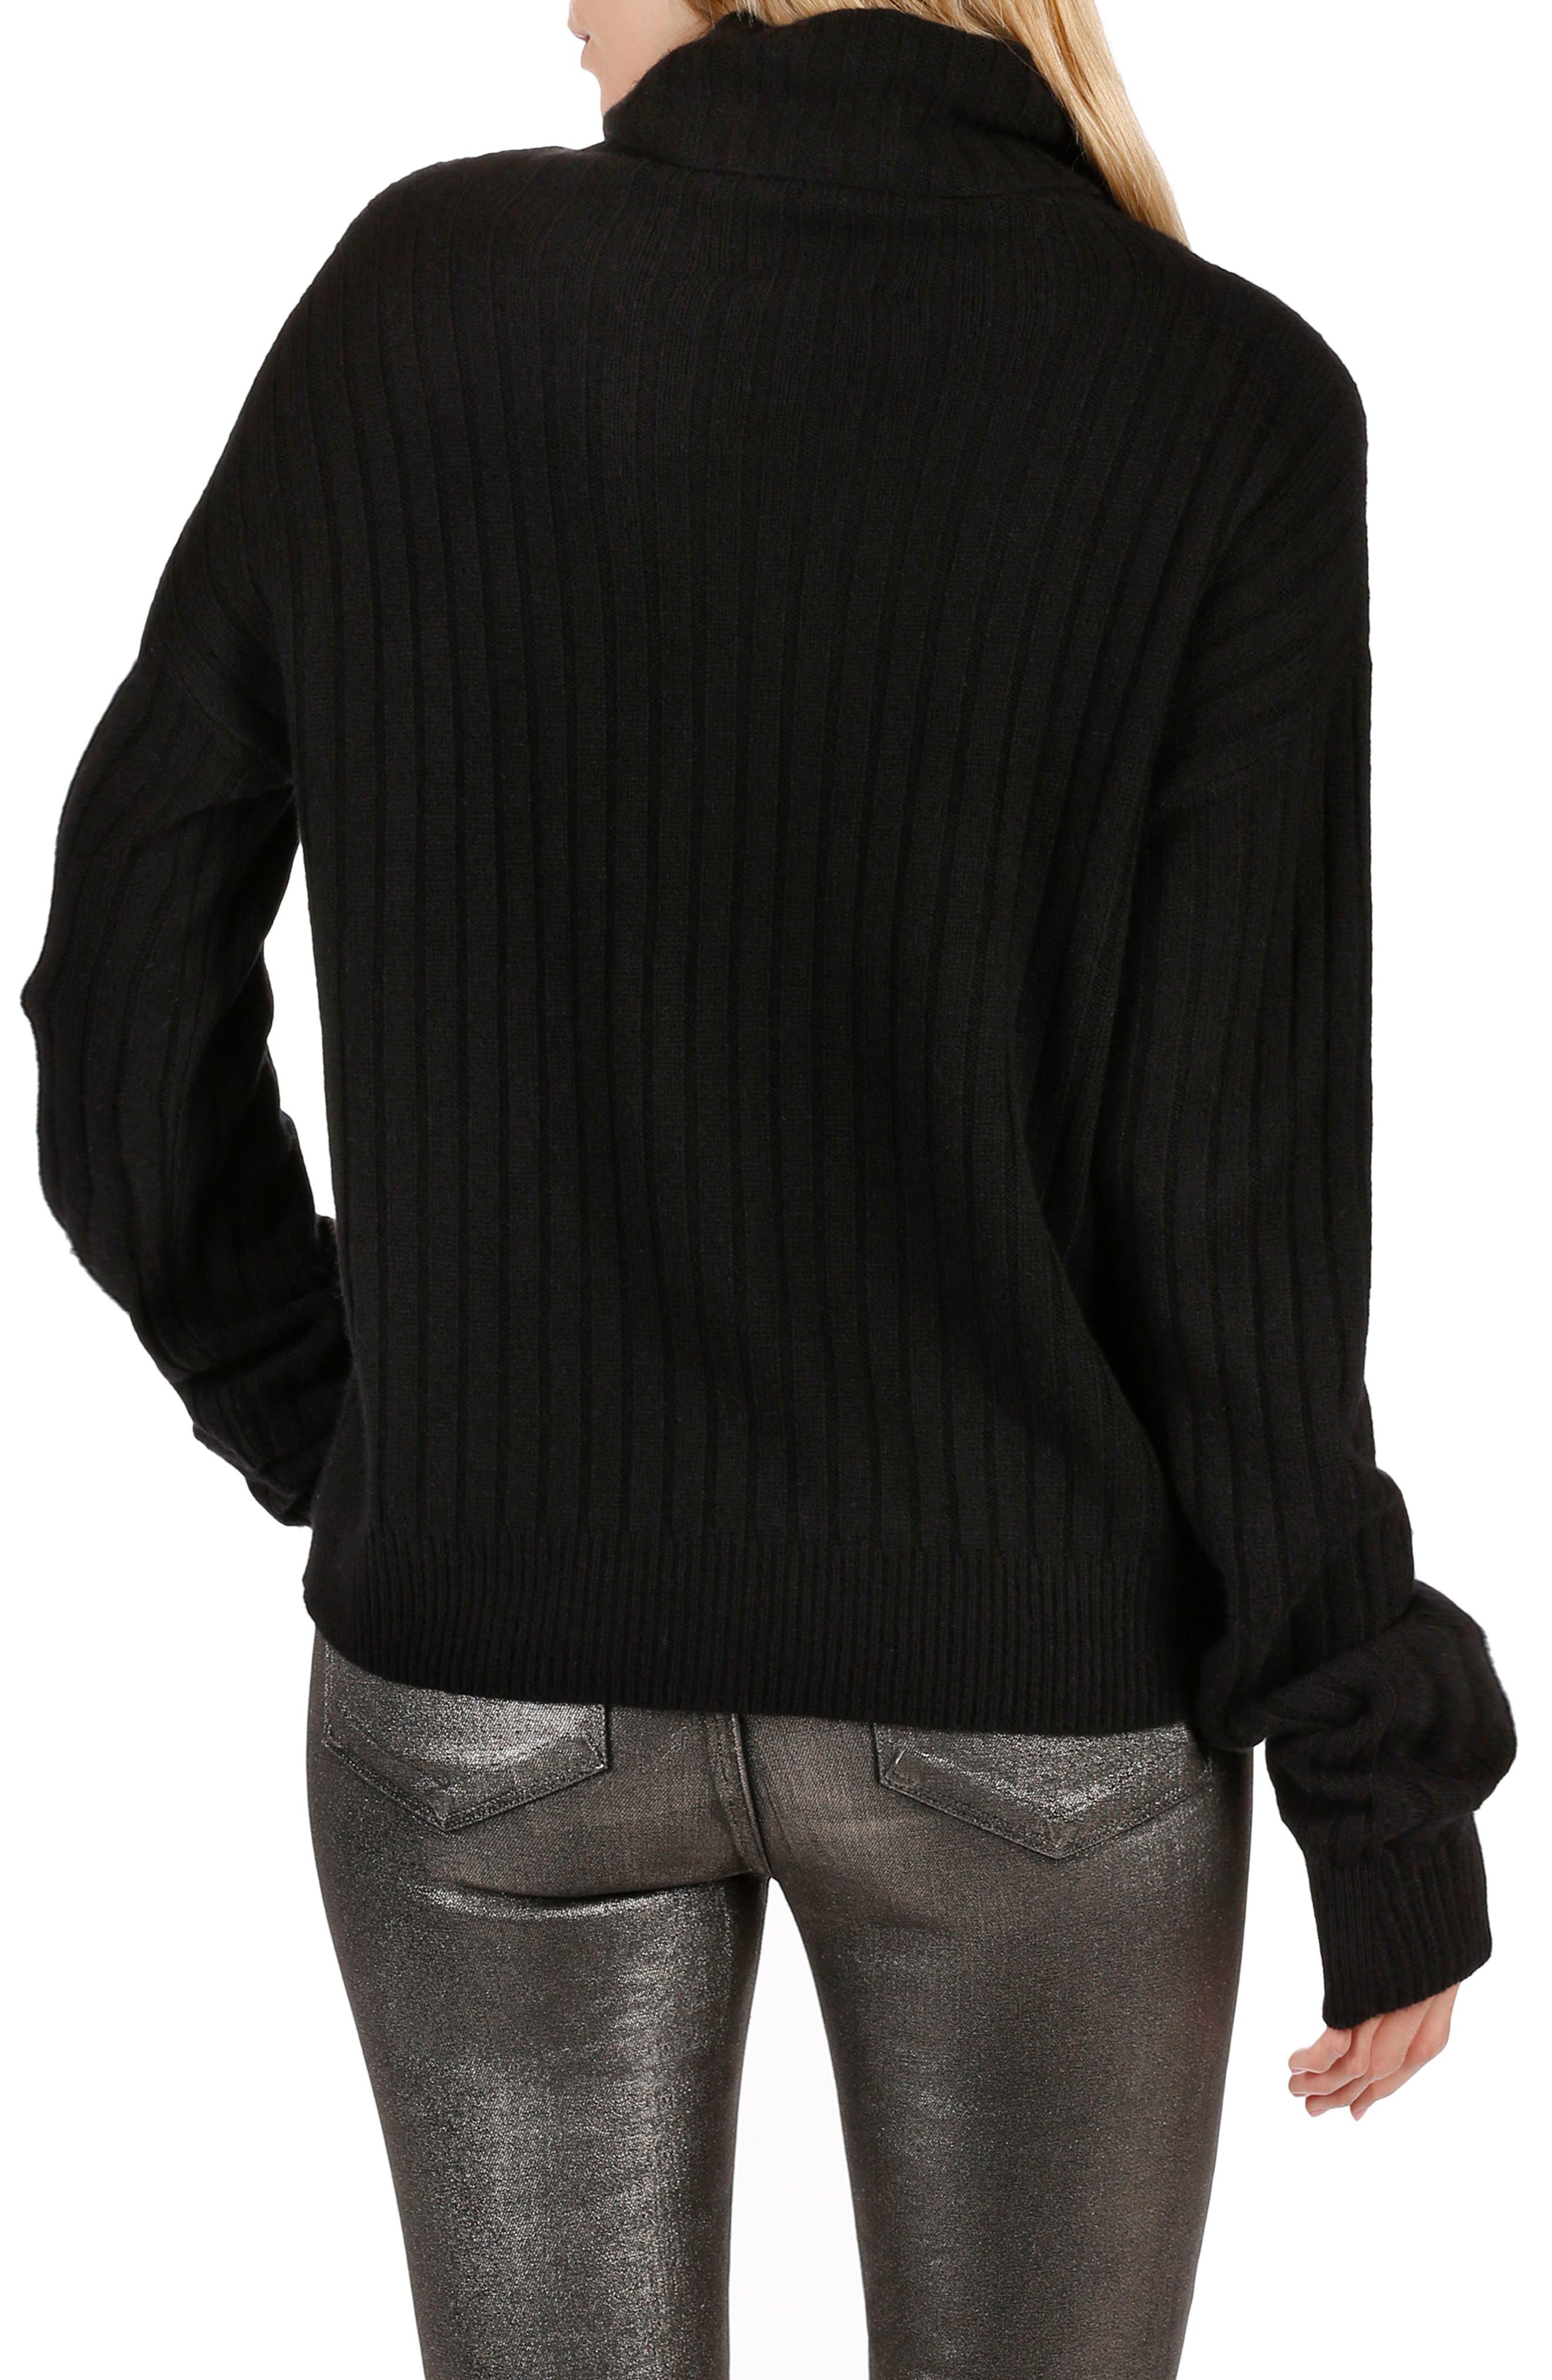 Rosie HW x PAIGE Mina Turtleneck Sweater,                             Alternate thumbnail 3, color,                             Black